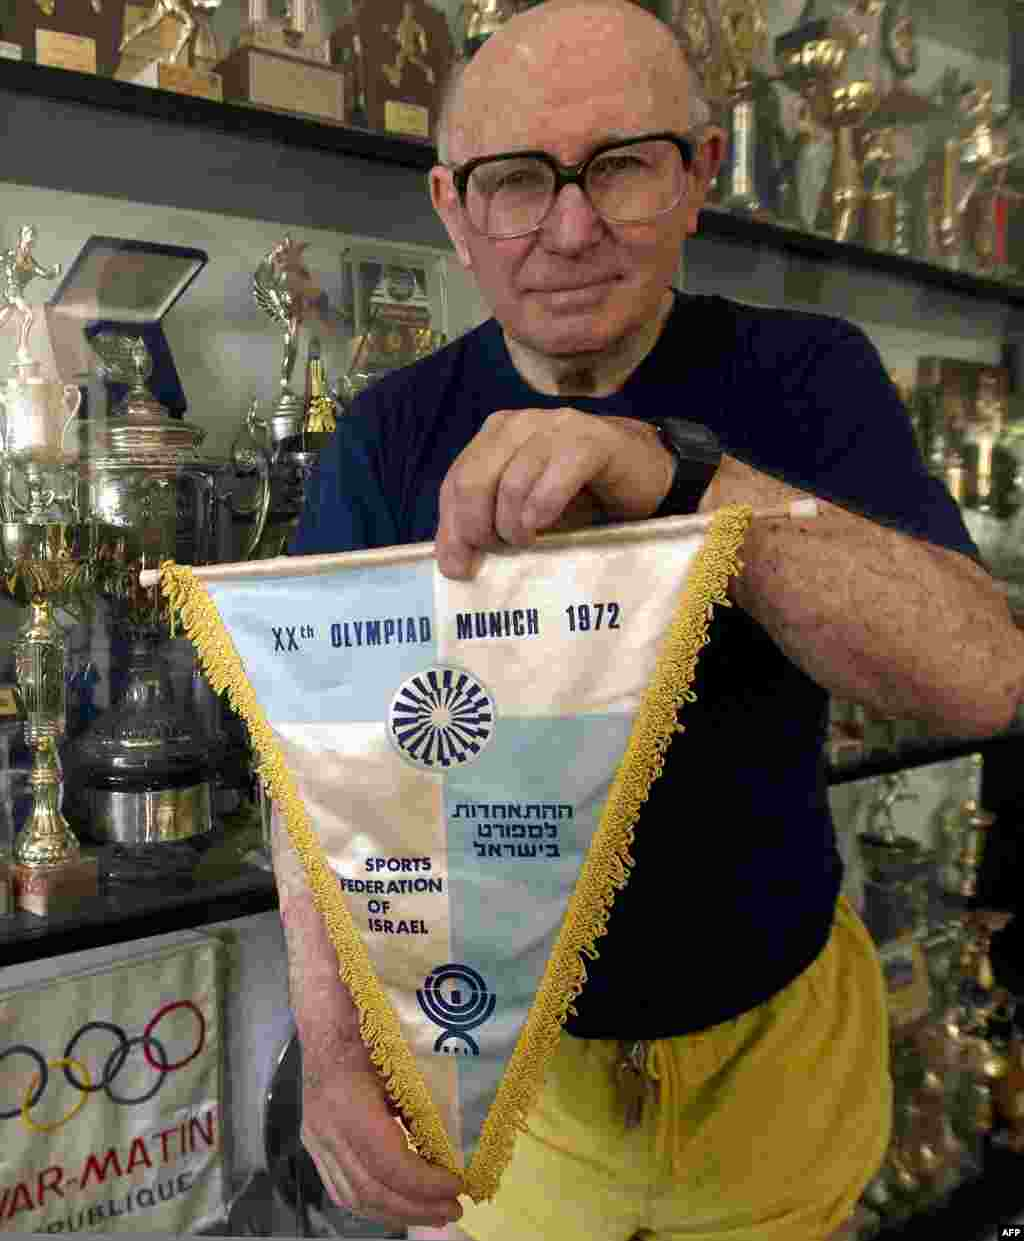 Race walker Shaul Ladany, who escaped a Nazi concentration camp and survived the 1972 Munich ordeal, shows the 1972 Israeli Olympic team's flag at his home in Omer in April 2012.